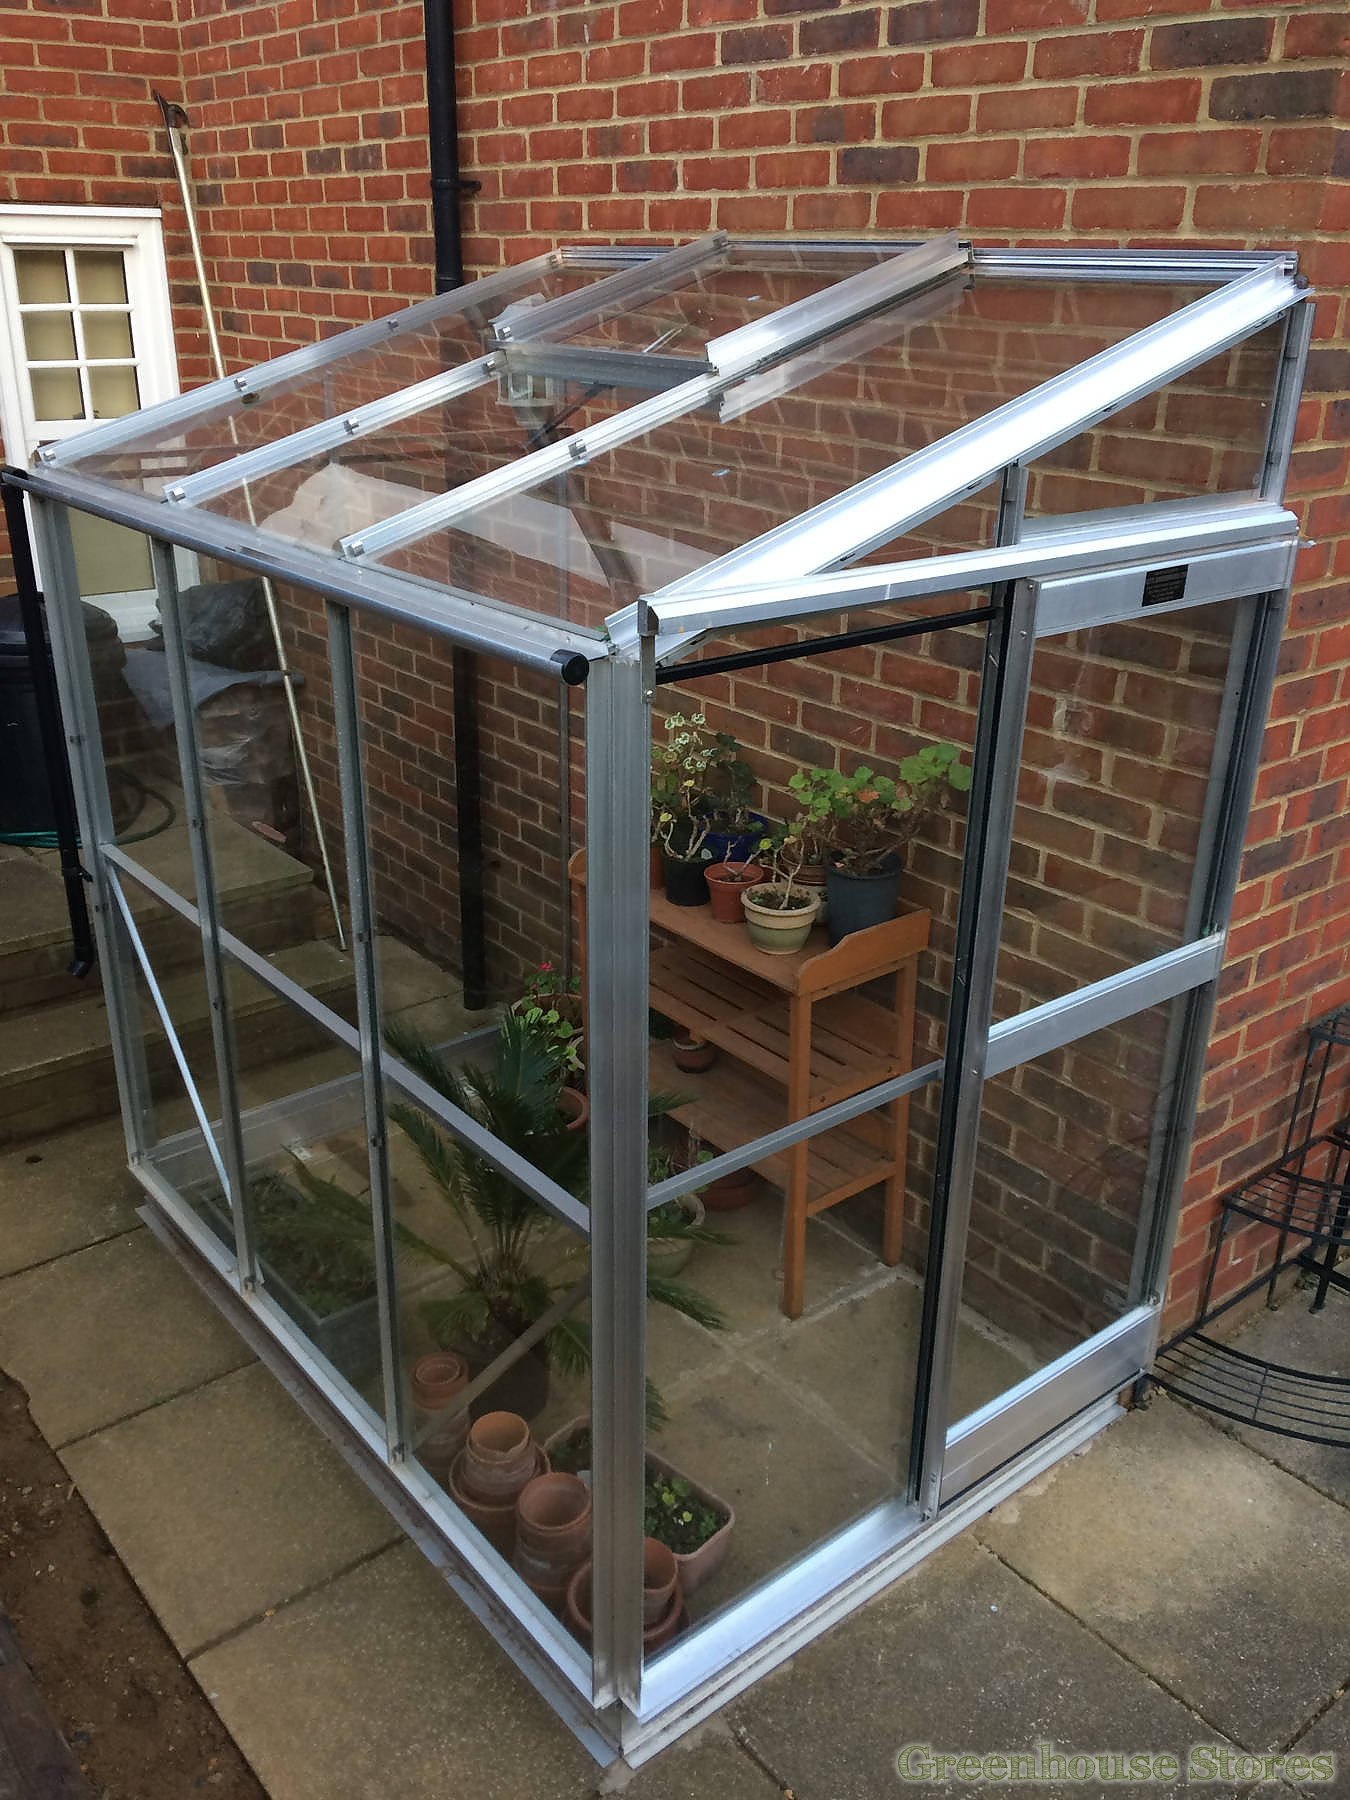 Elite Windsor 4x8 Lean to Greenhouse - 3mm Horticultural Glazing